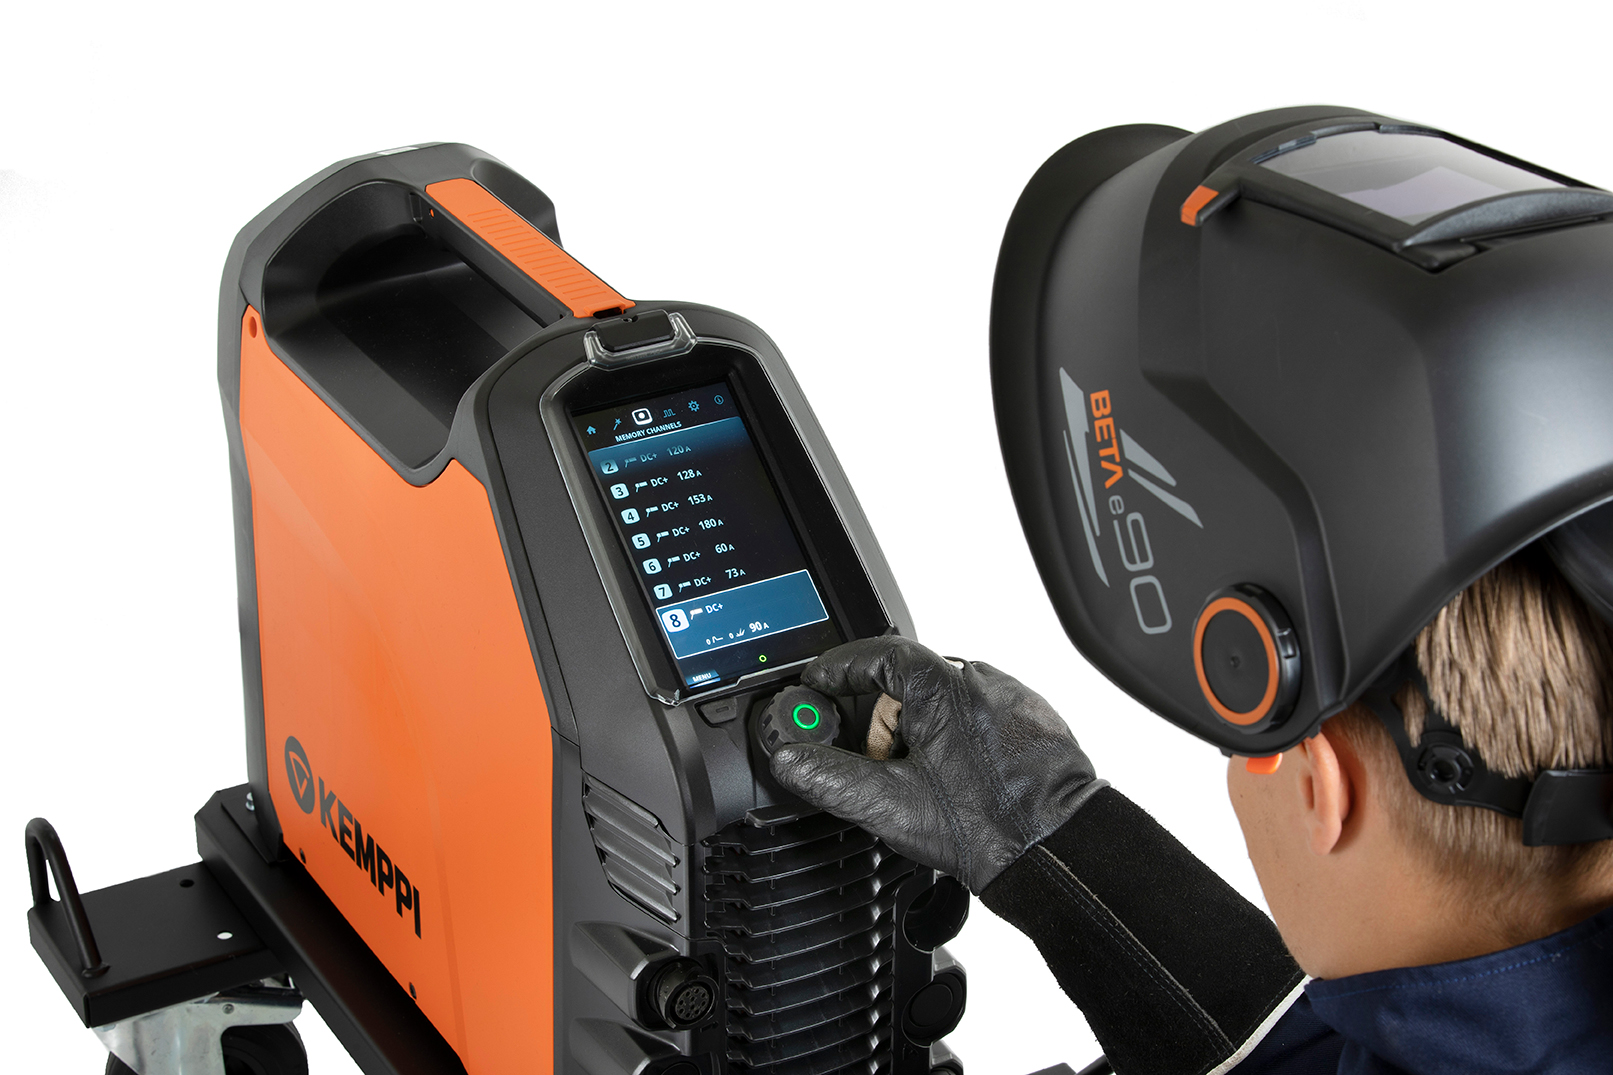 Master 315 is equipped with a full-color 7-inch TFT display, ensuring the best user experience and accuracy for weld parameter setting and control.